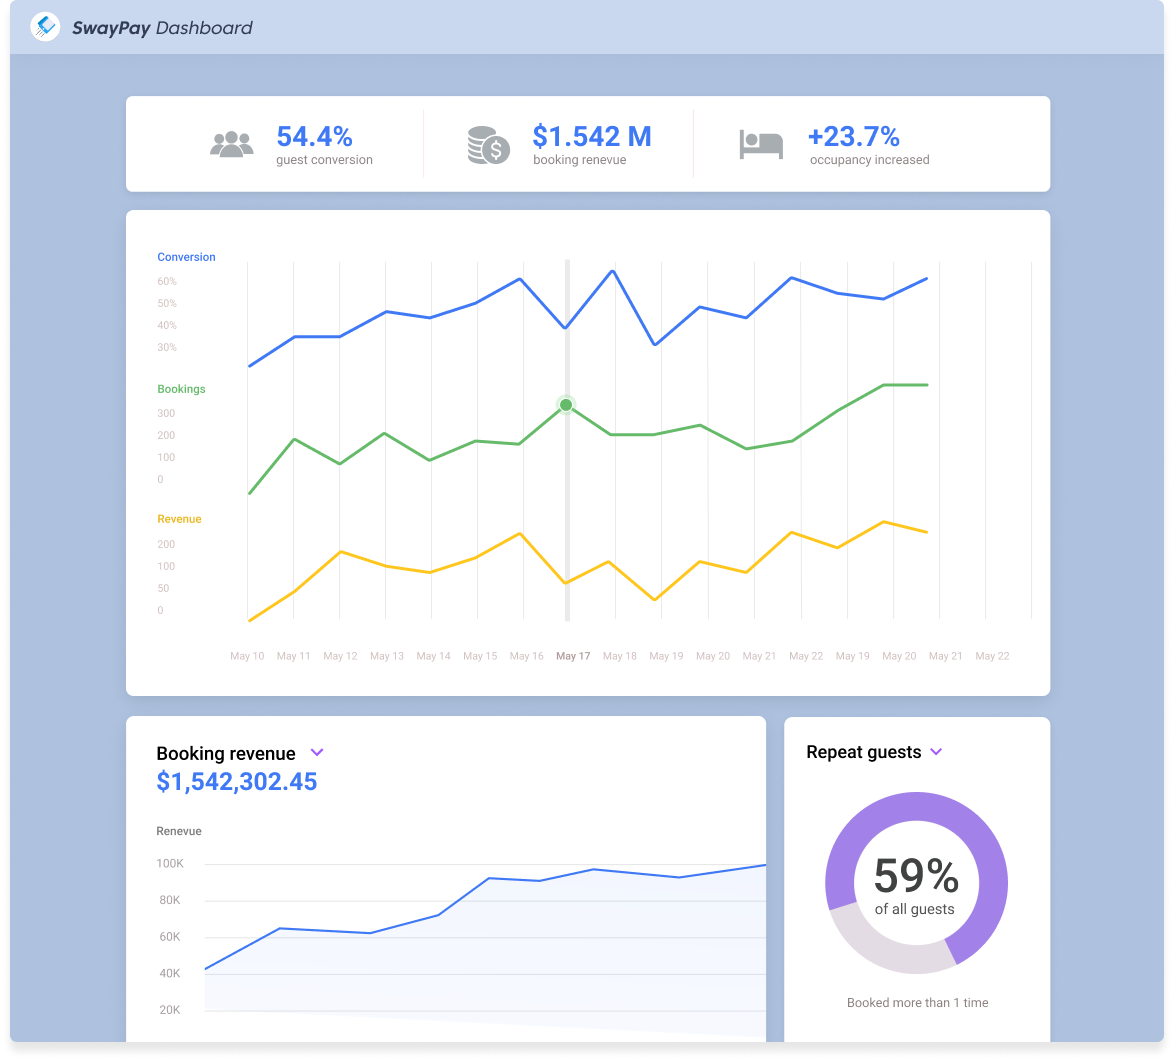 Dashboard app has bunch of graphs and charts